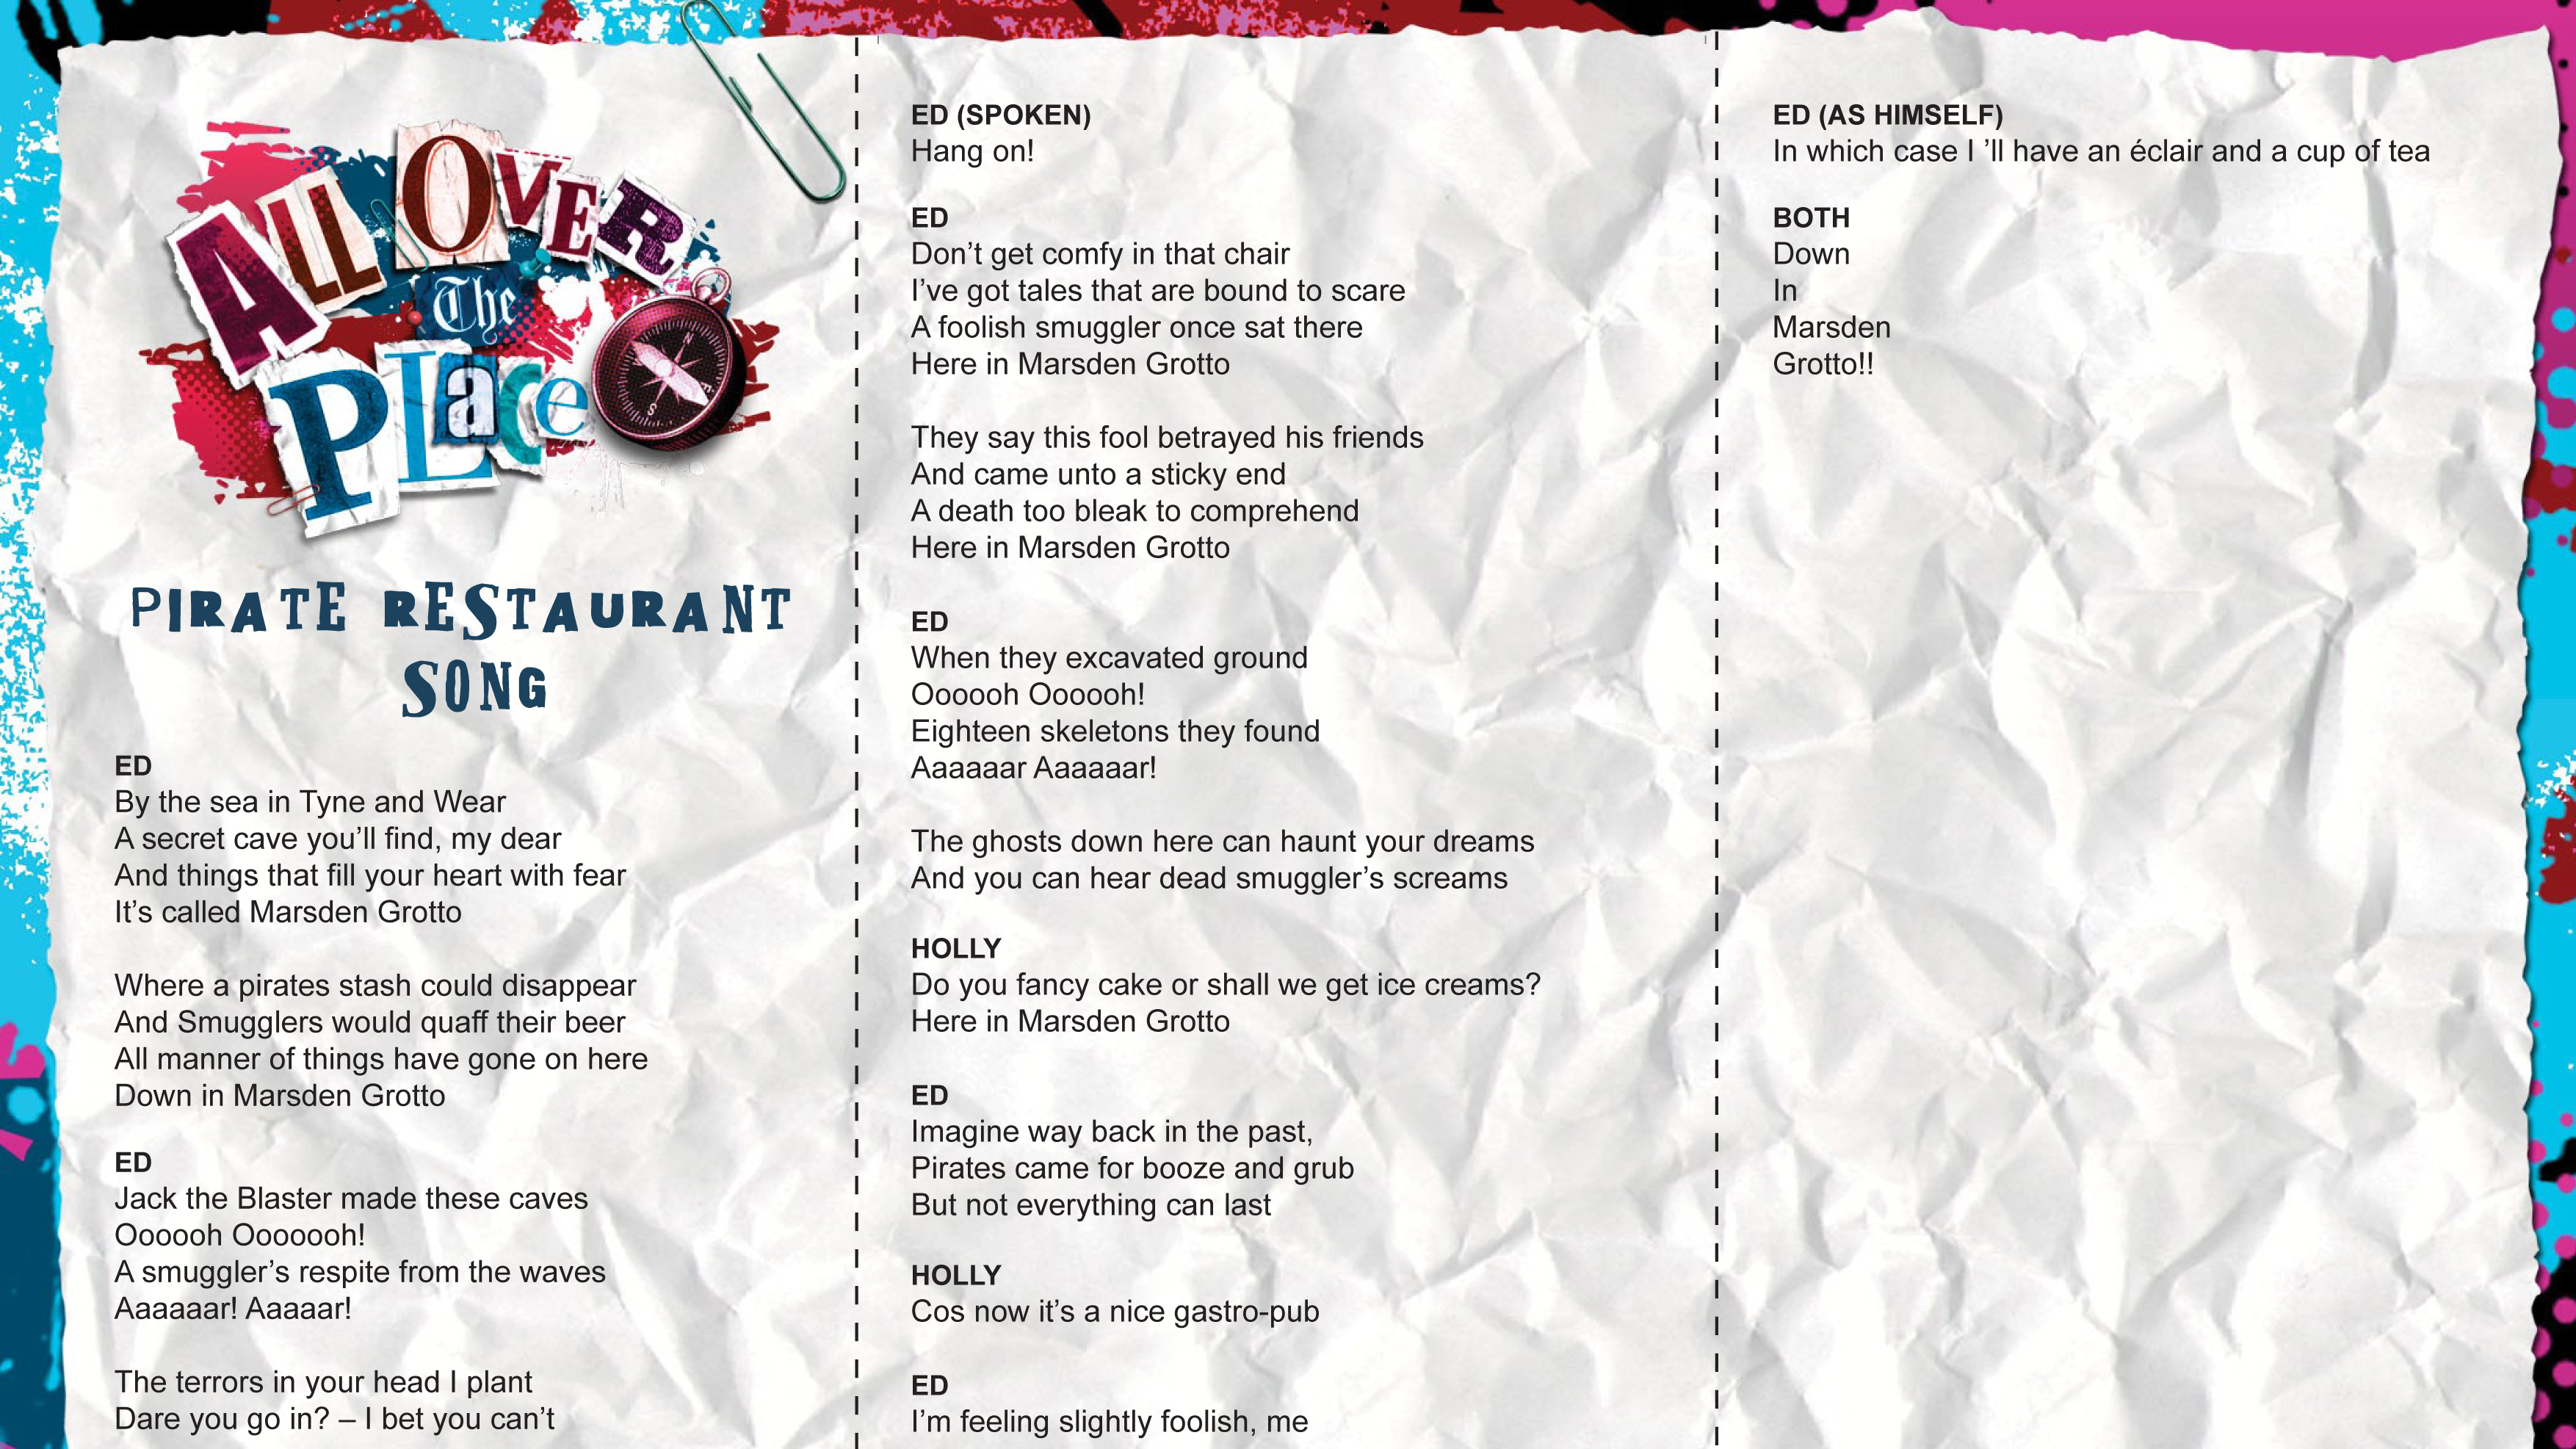 Pirate resturant song lyrics